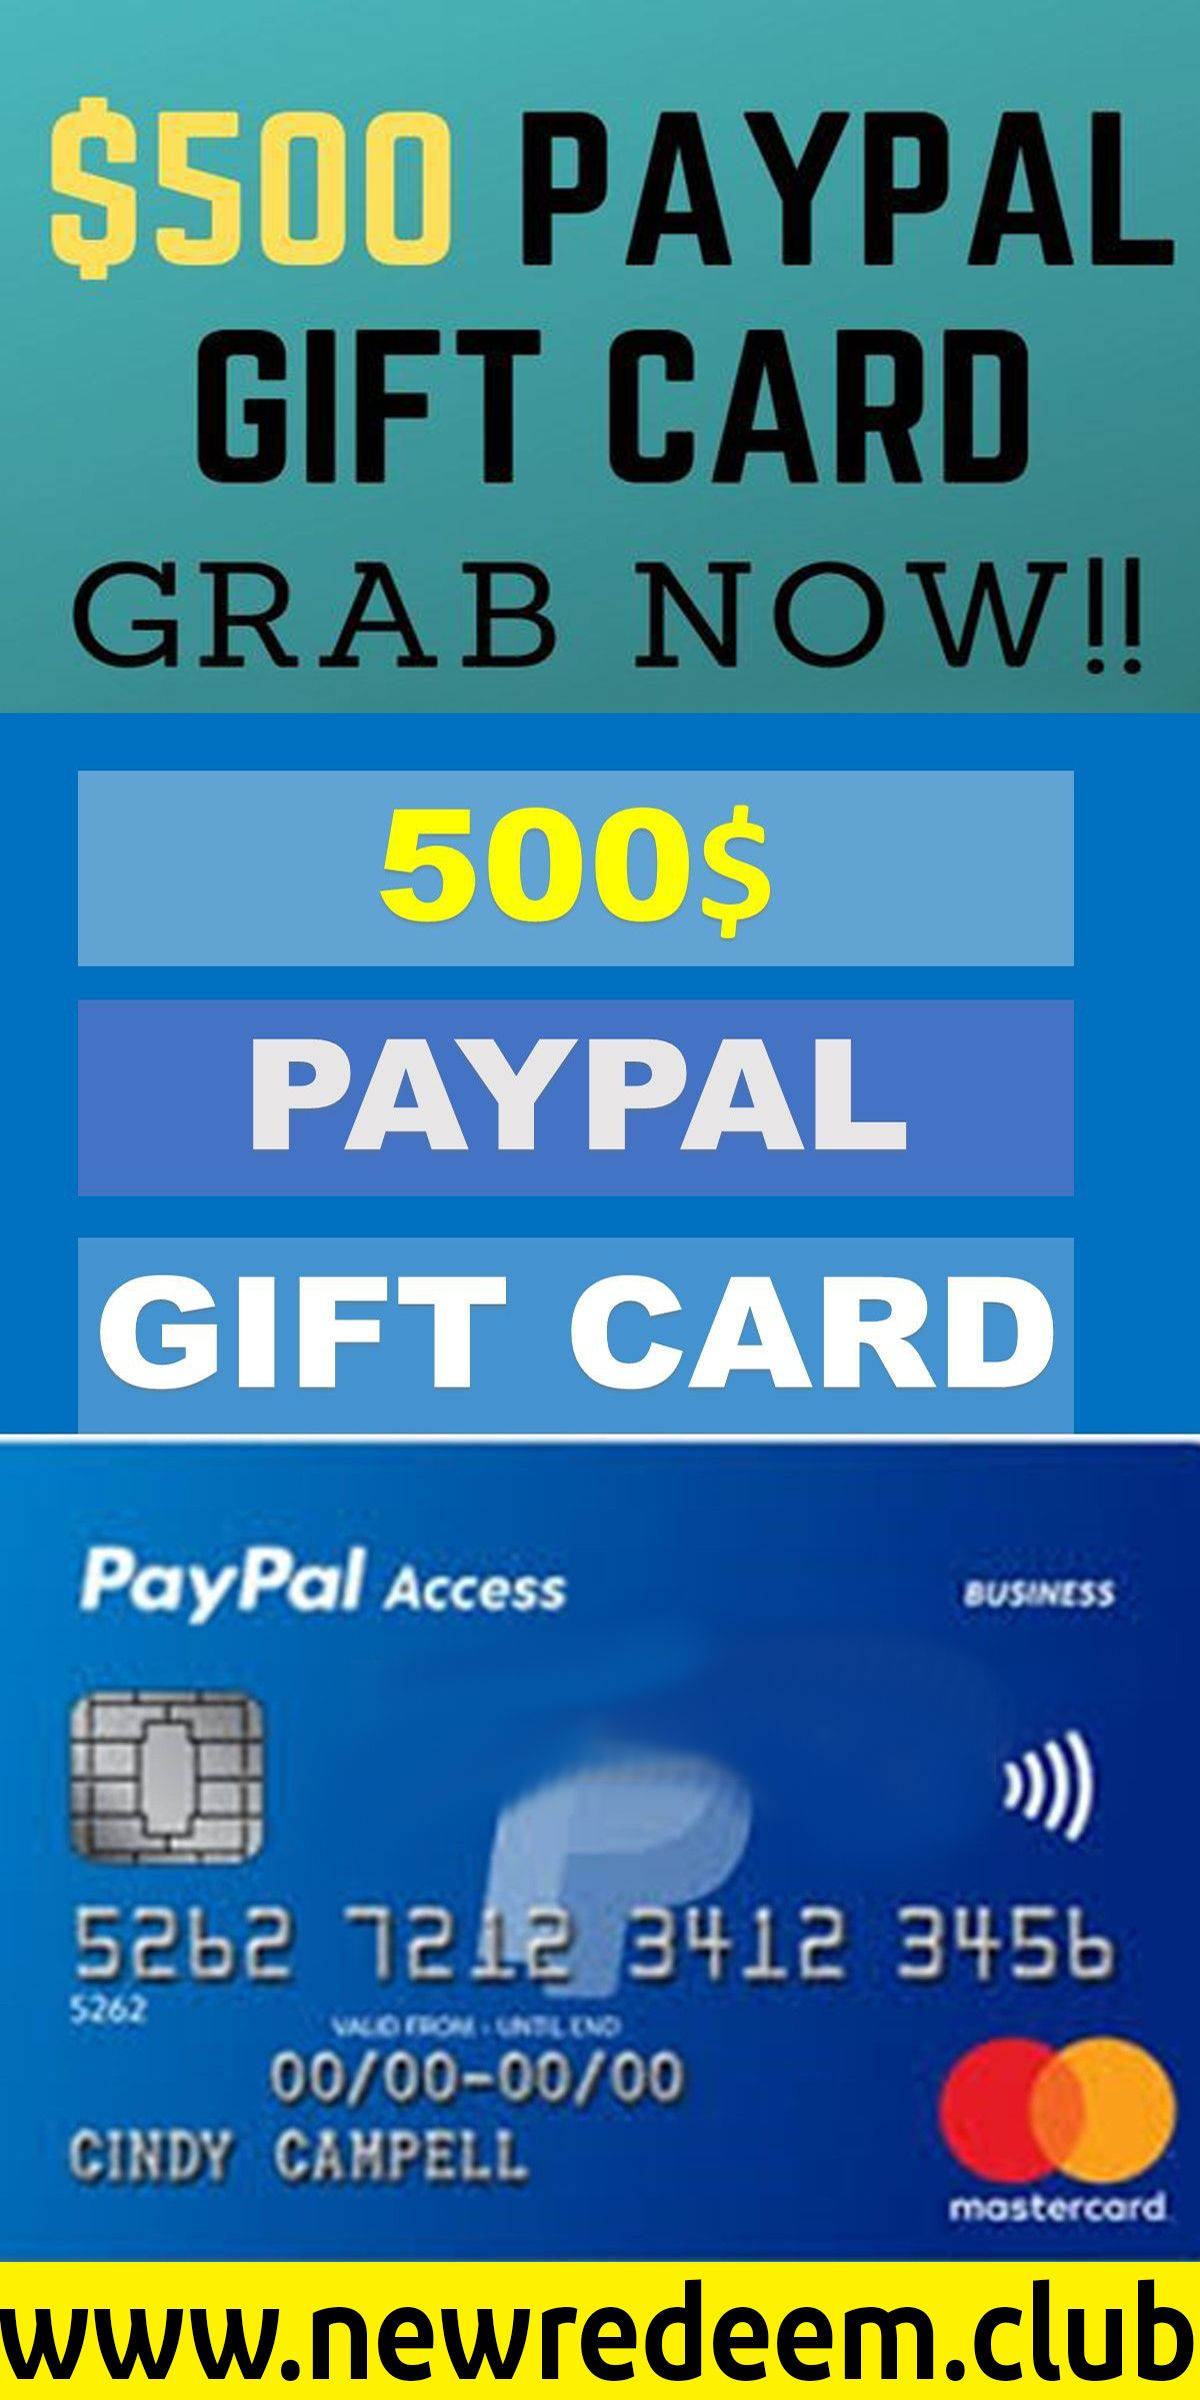 How To Get Free Paypal Gift Card Paypal Gift Card Free Itunes Gift Card Free Gift Cards